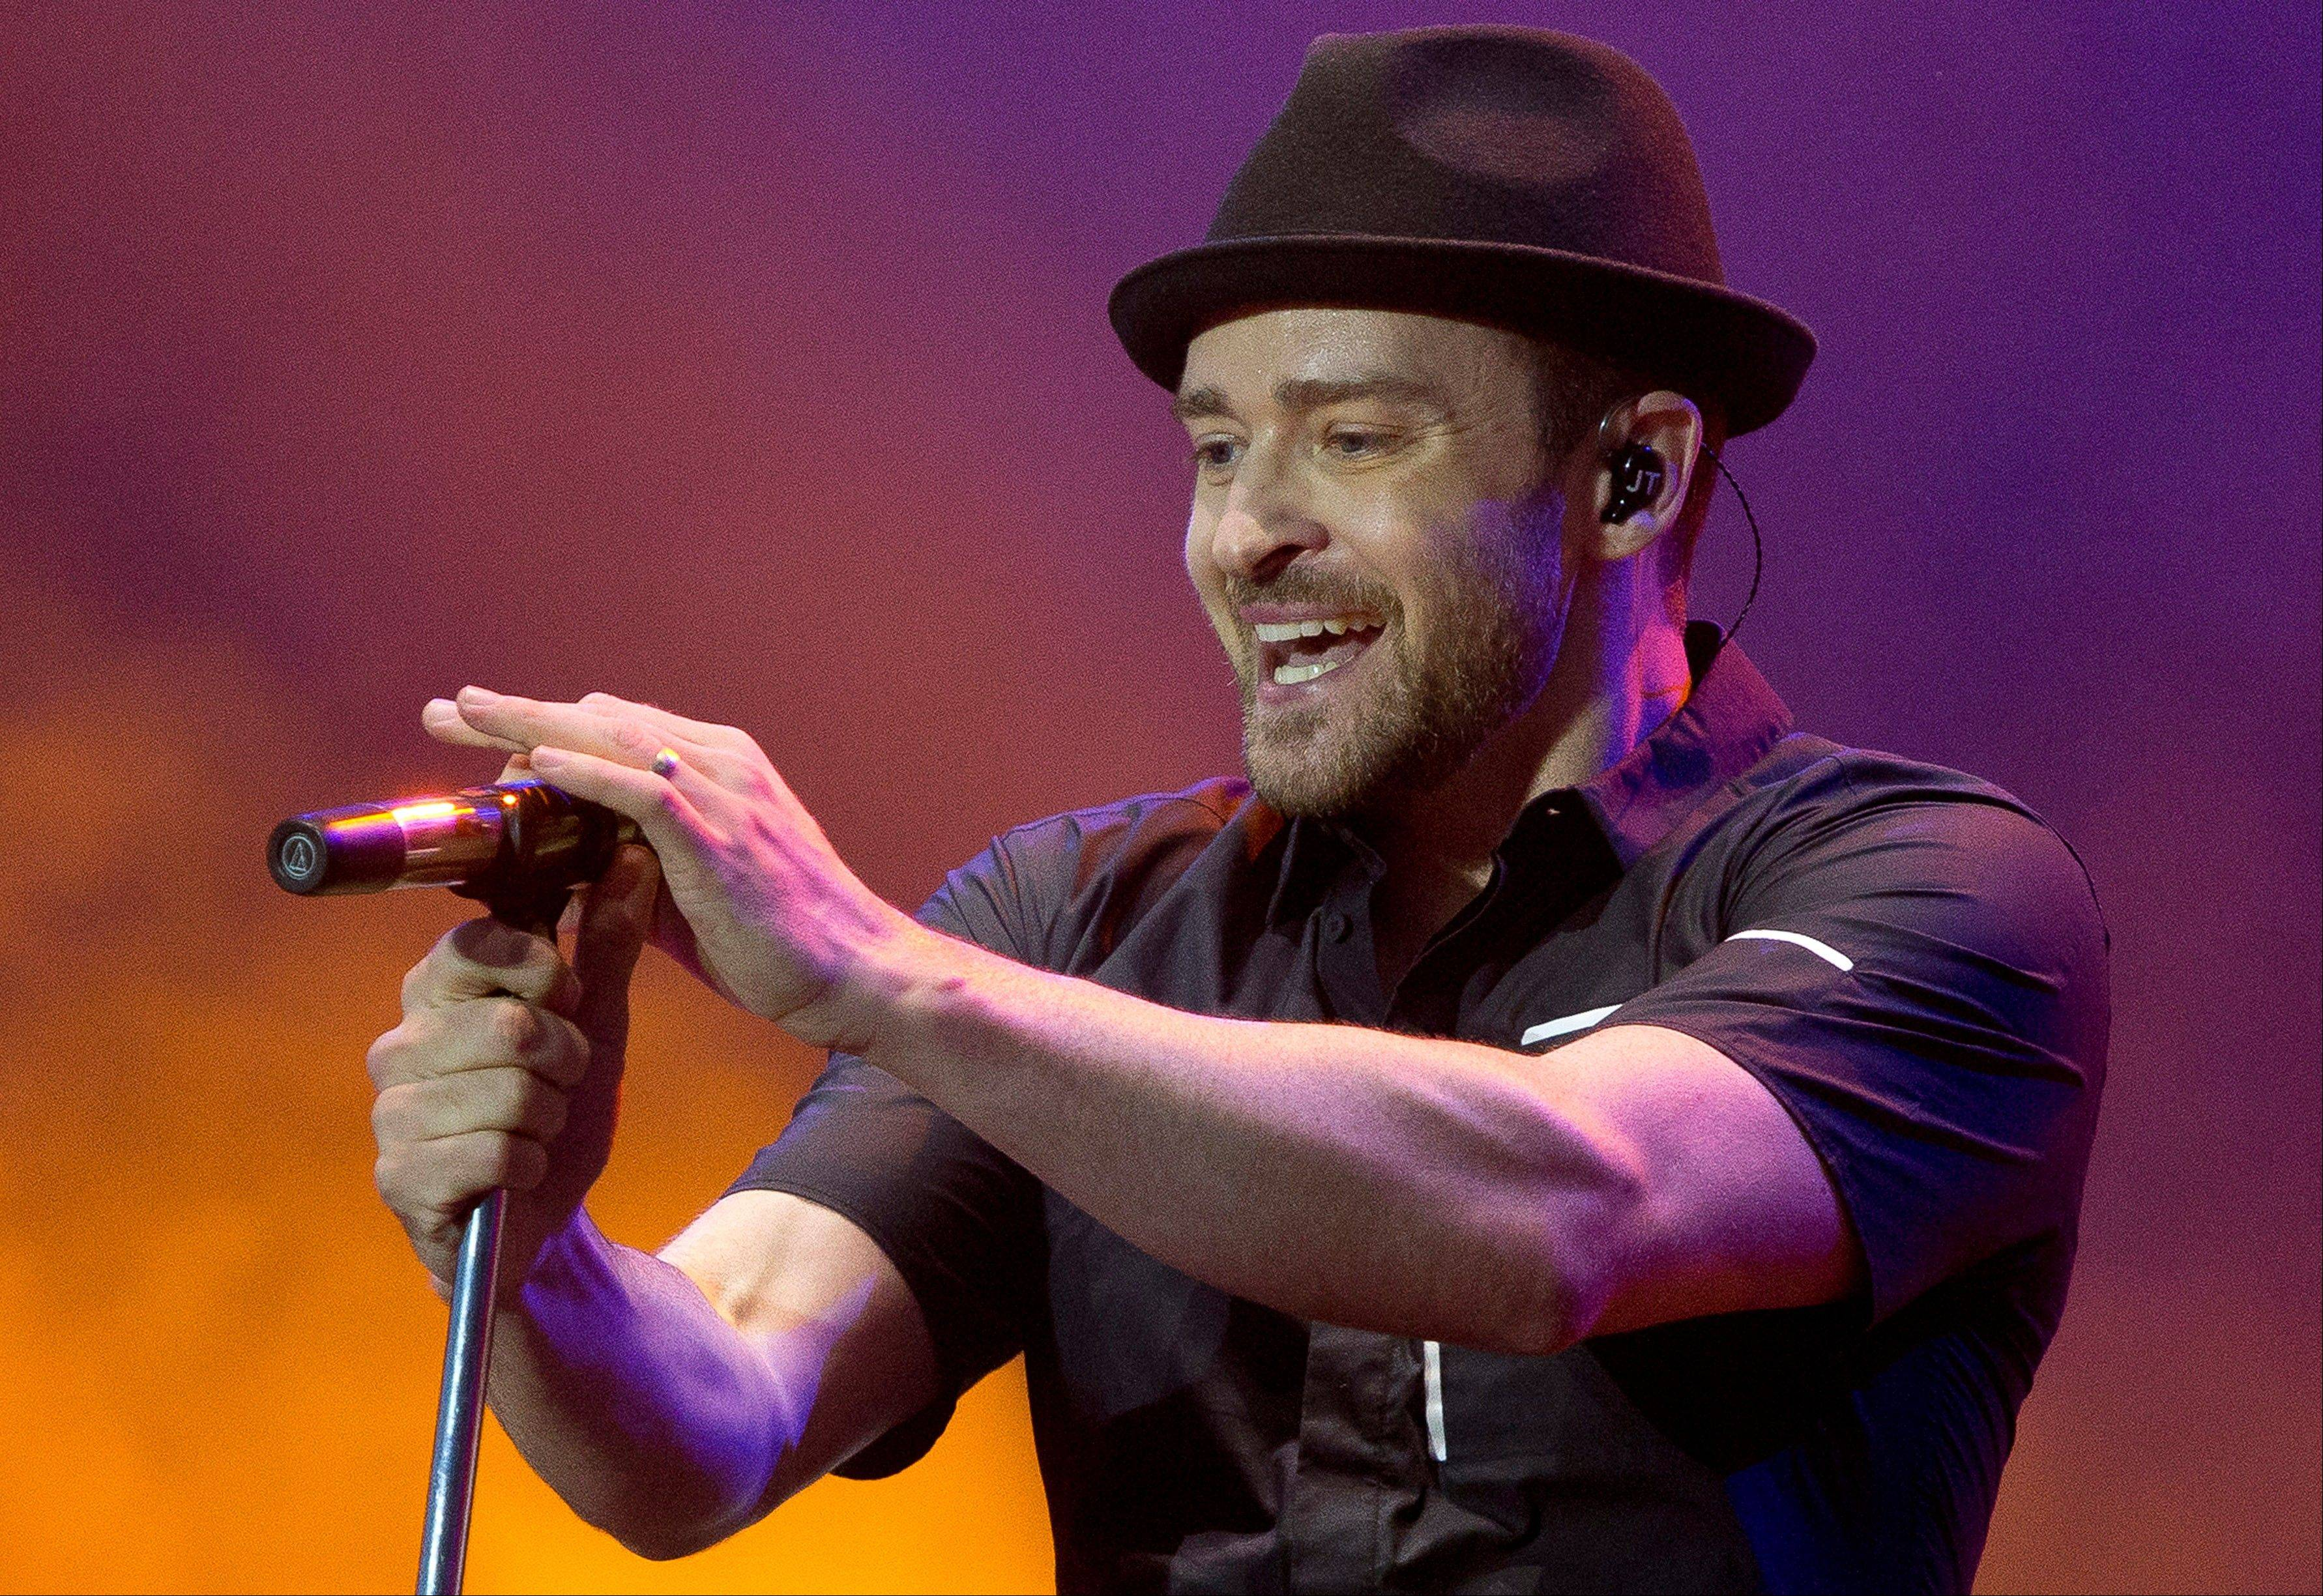 Justin Timberlake and Macklemore & Ryan Lewis lead the 2013 MTV EMA nominations with five nods each.